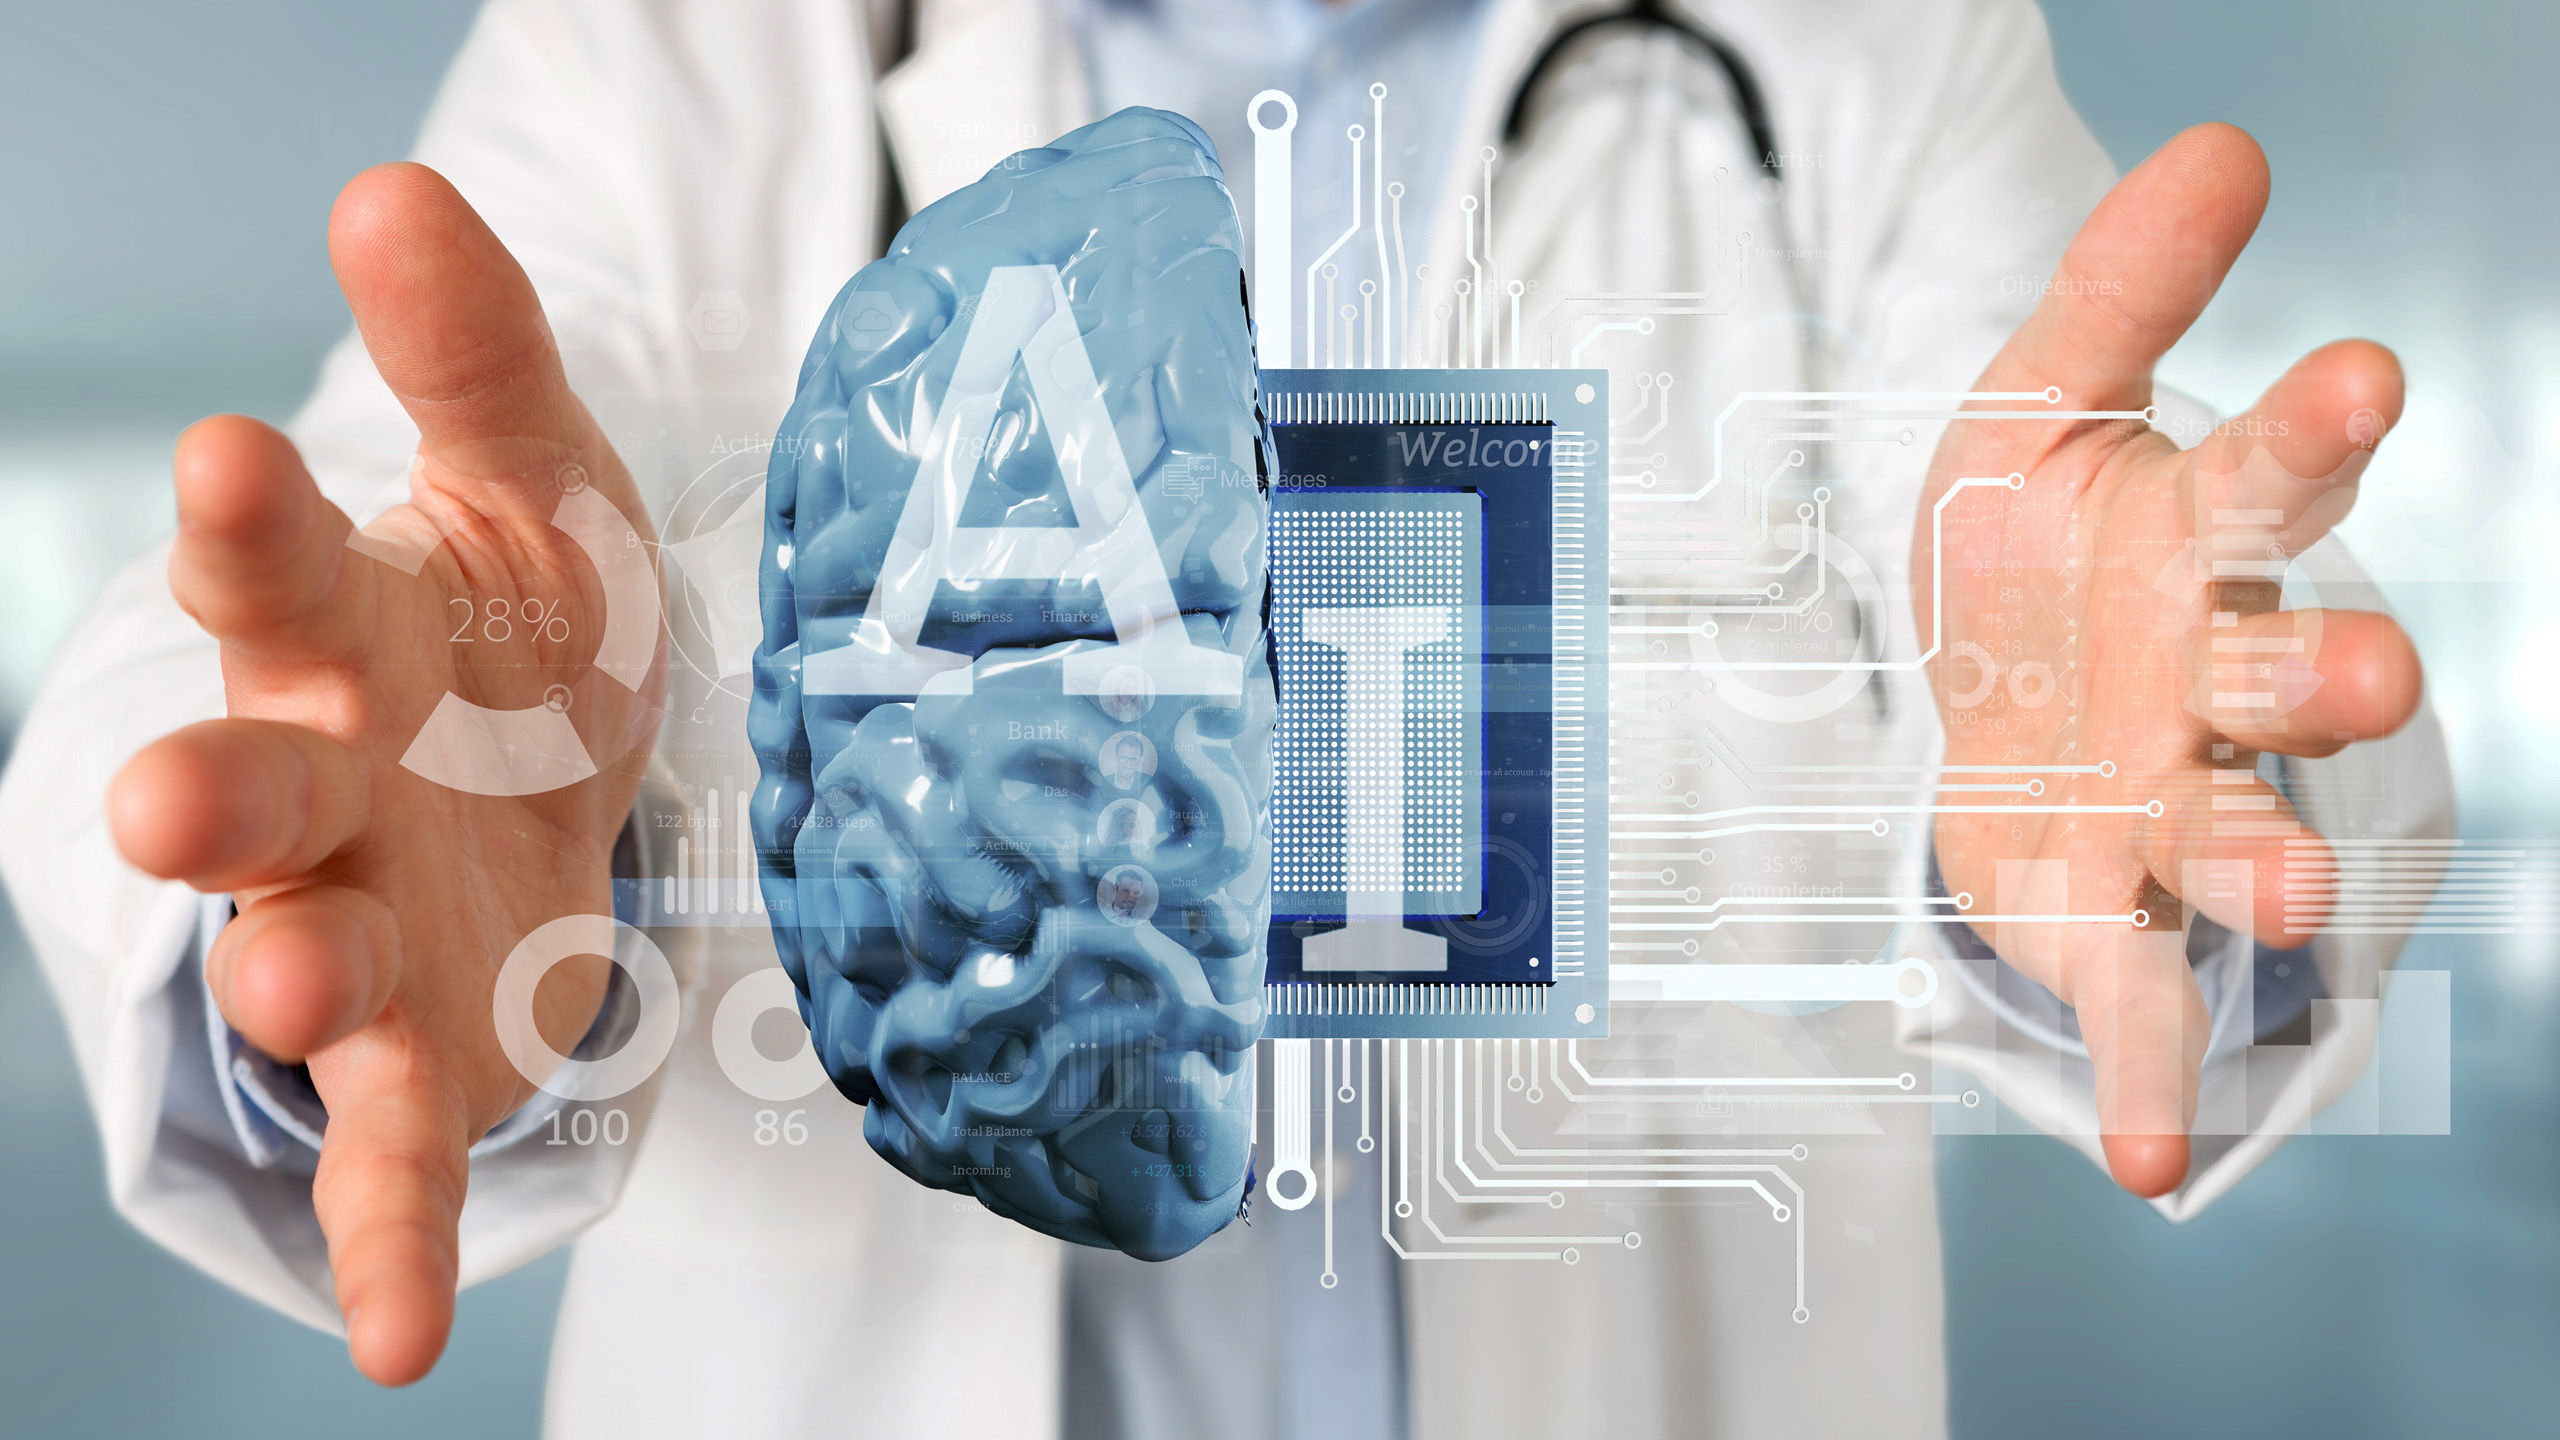 Artificial Intelligence and Machine Learning in the Healthcare Industry